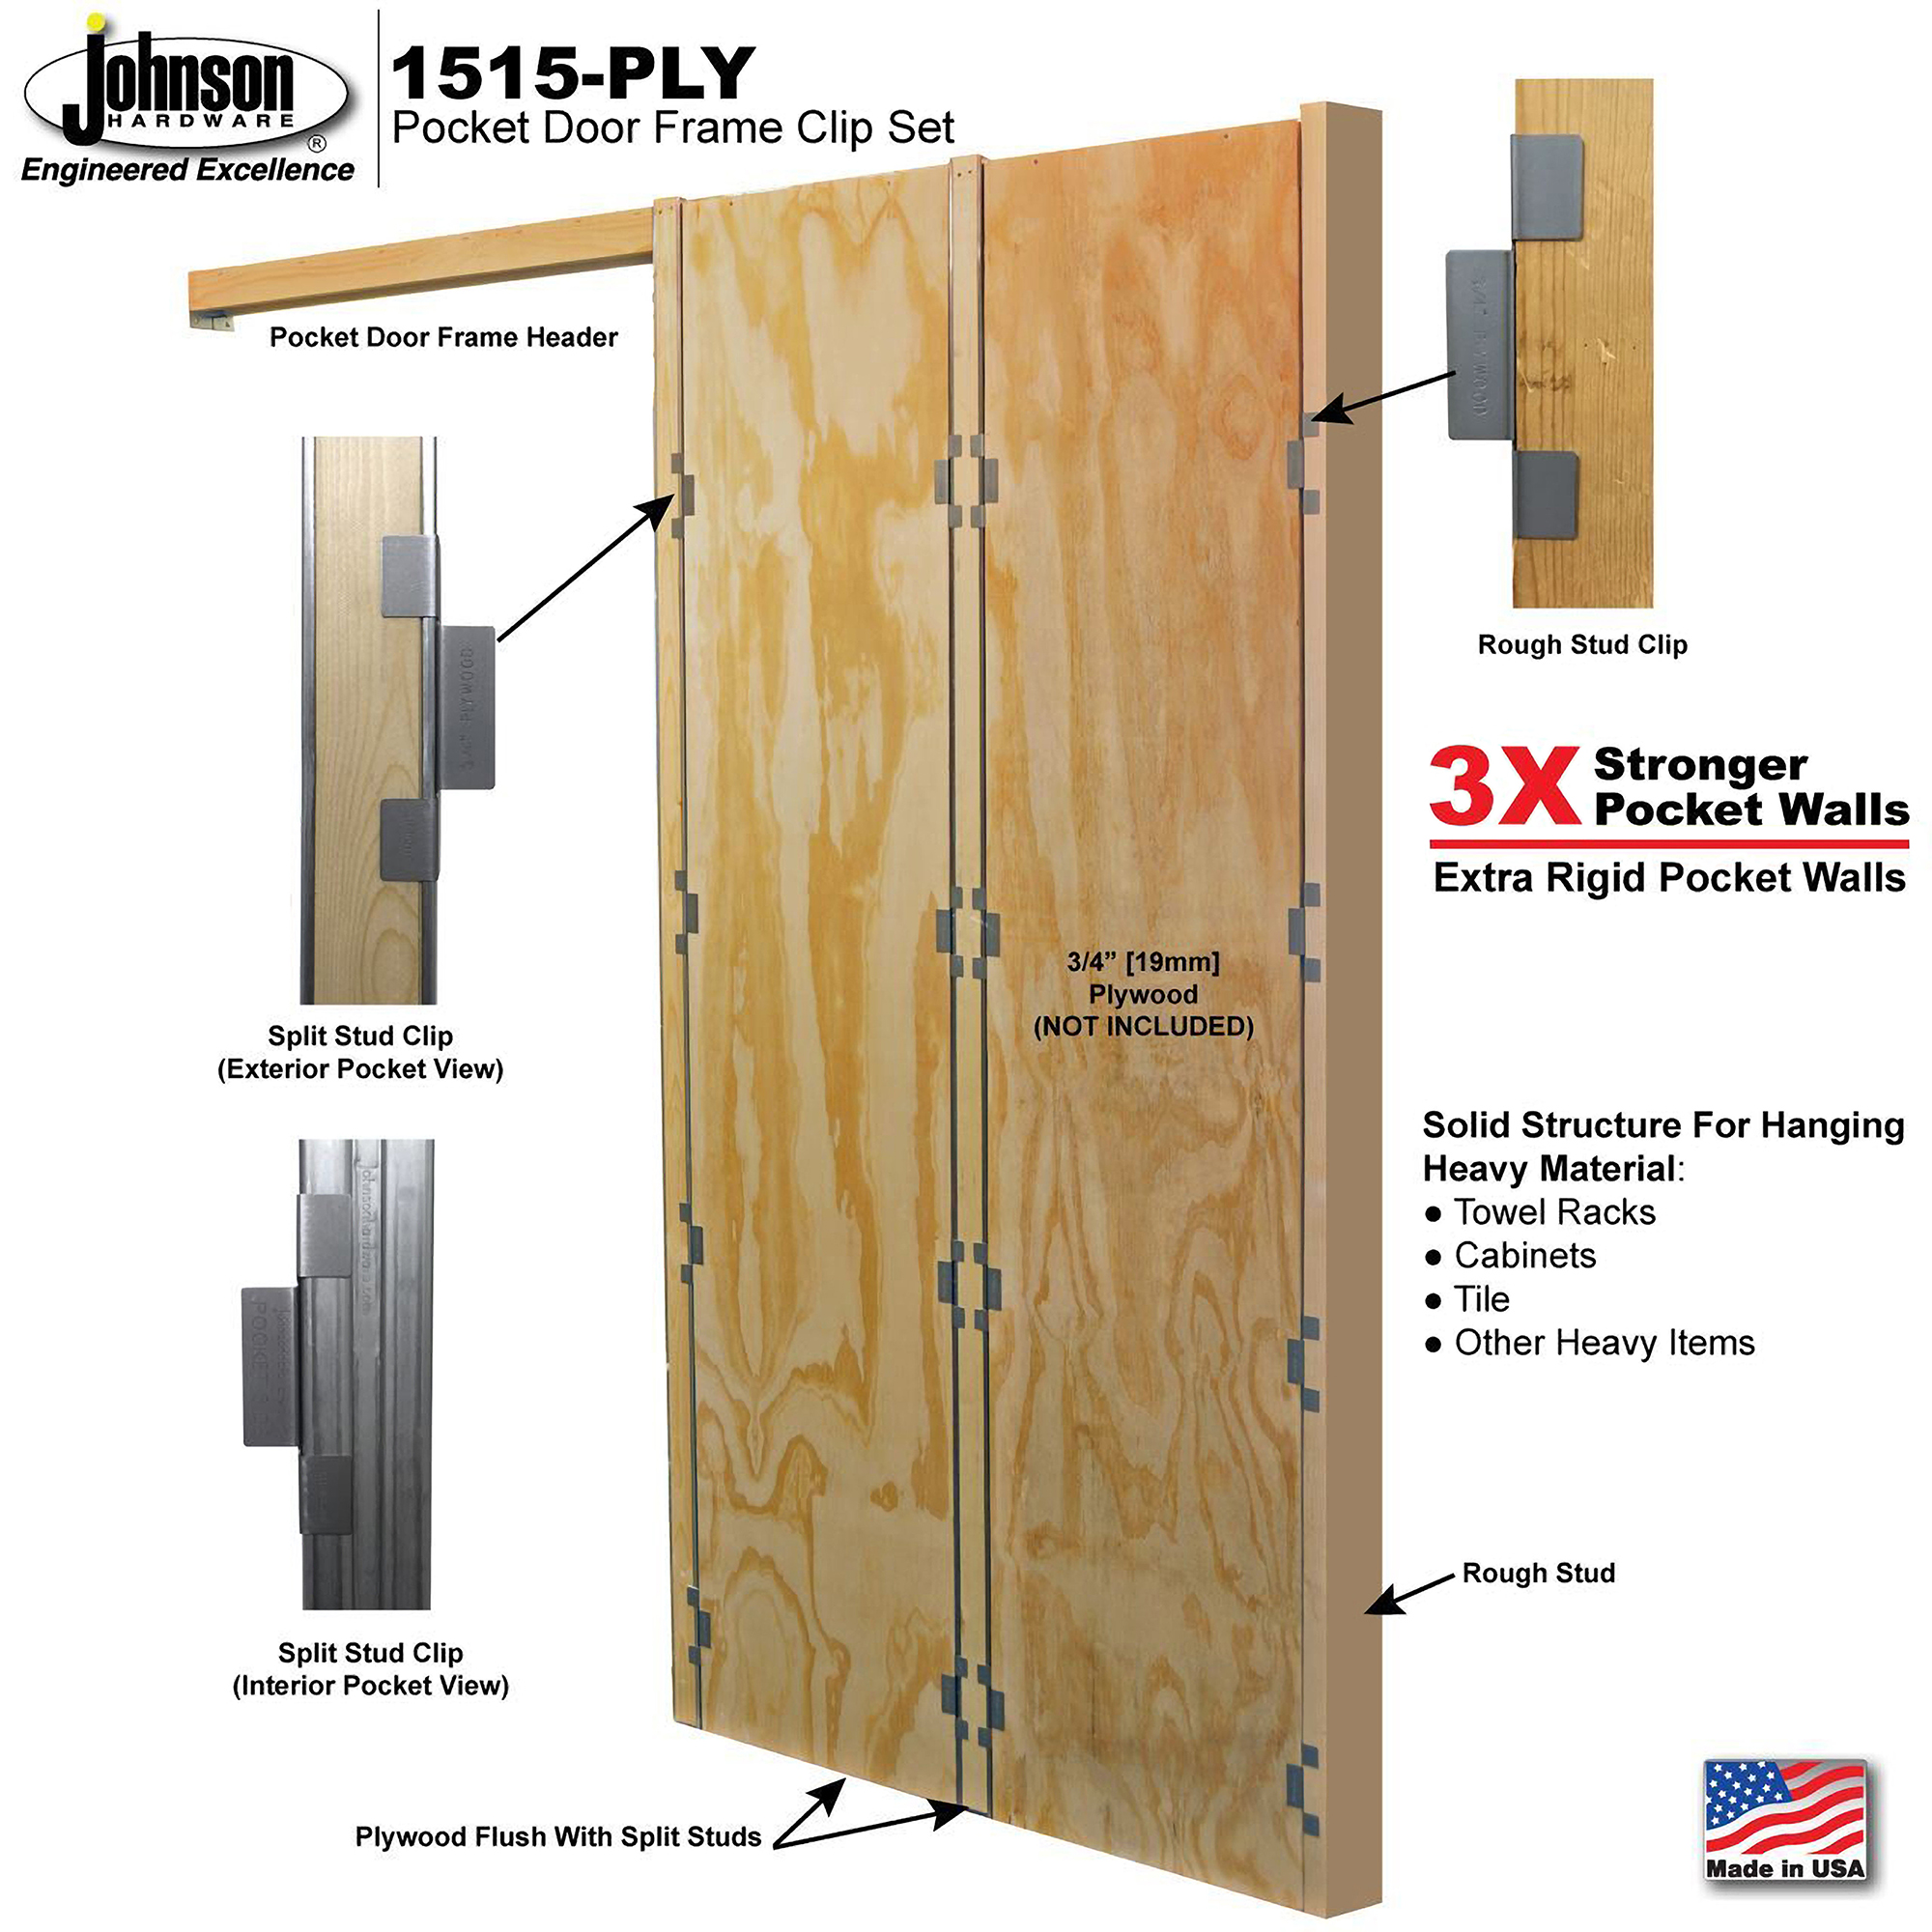 Pocket Door Frame Plywood Clip Set Architect Magazine